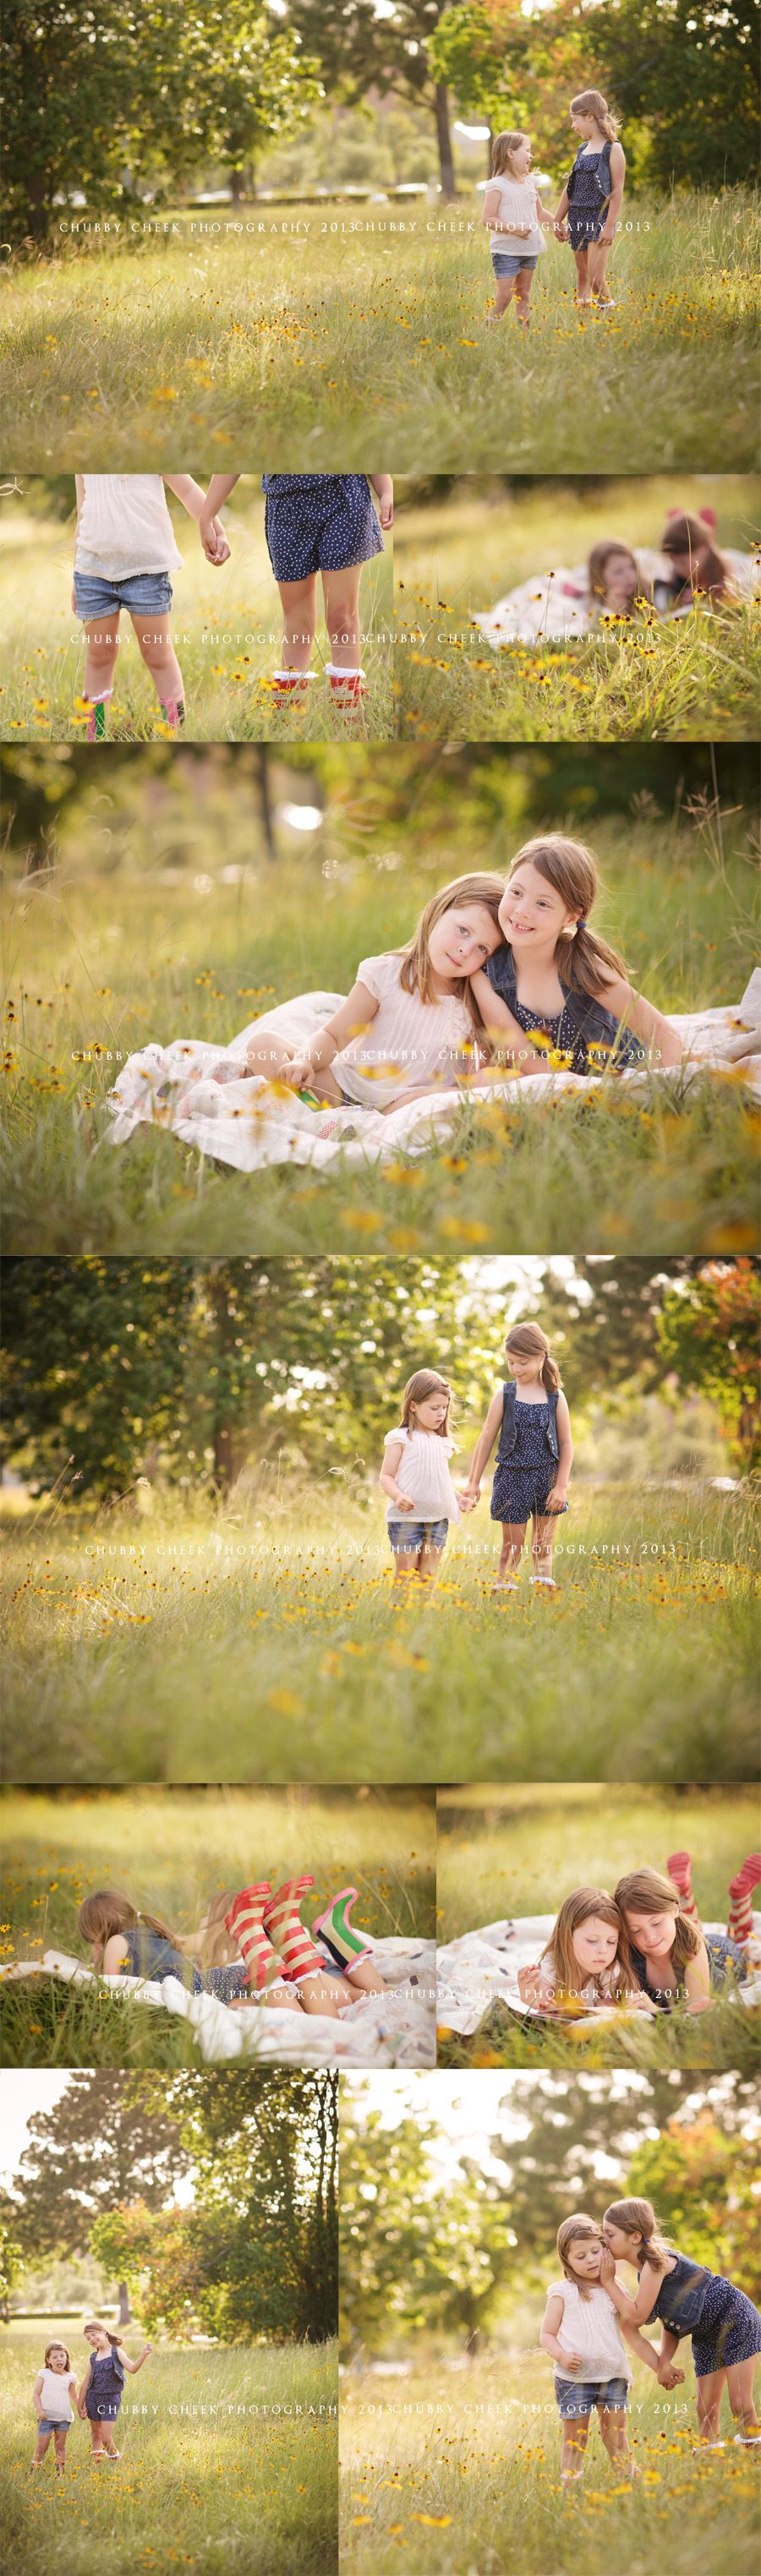 Chubby Cheek Photography Houston, TX Natural Light Photographer ...